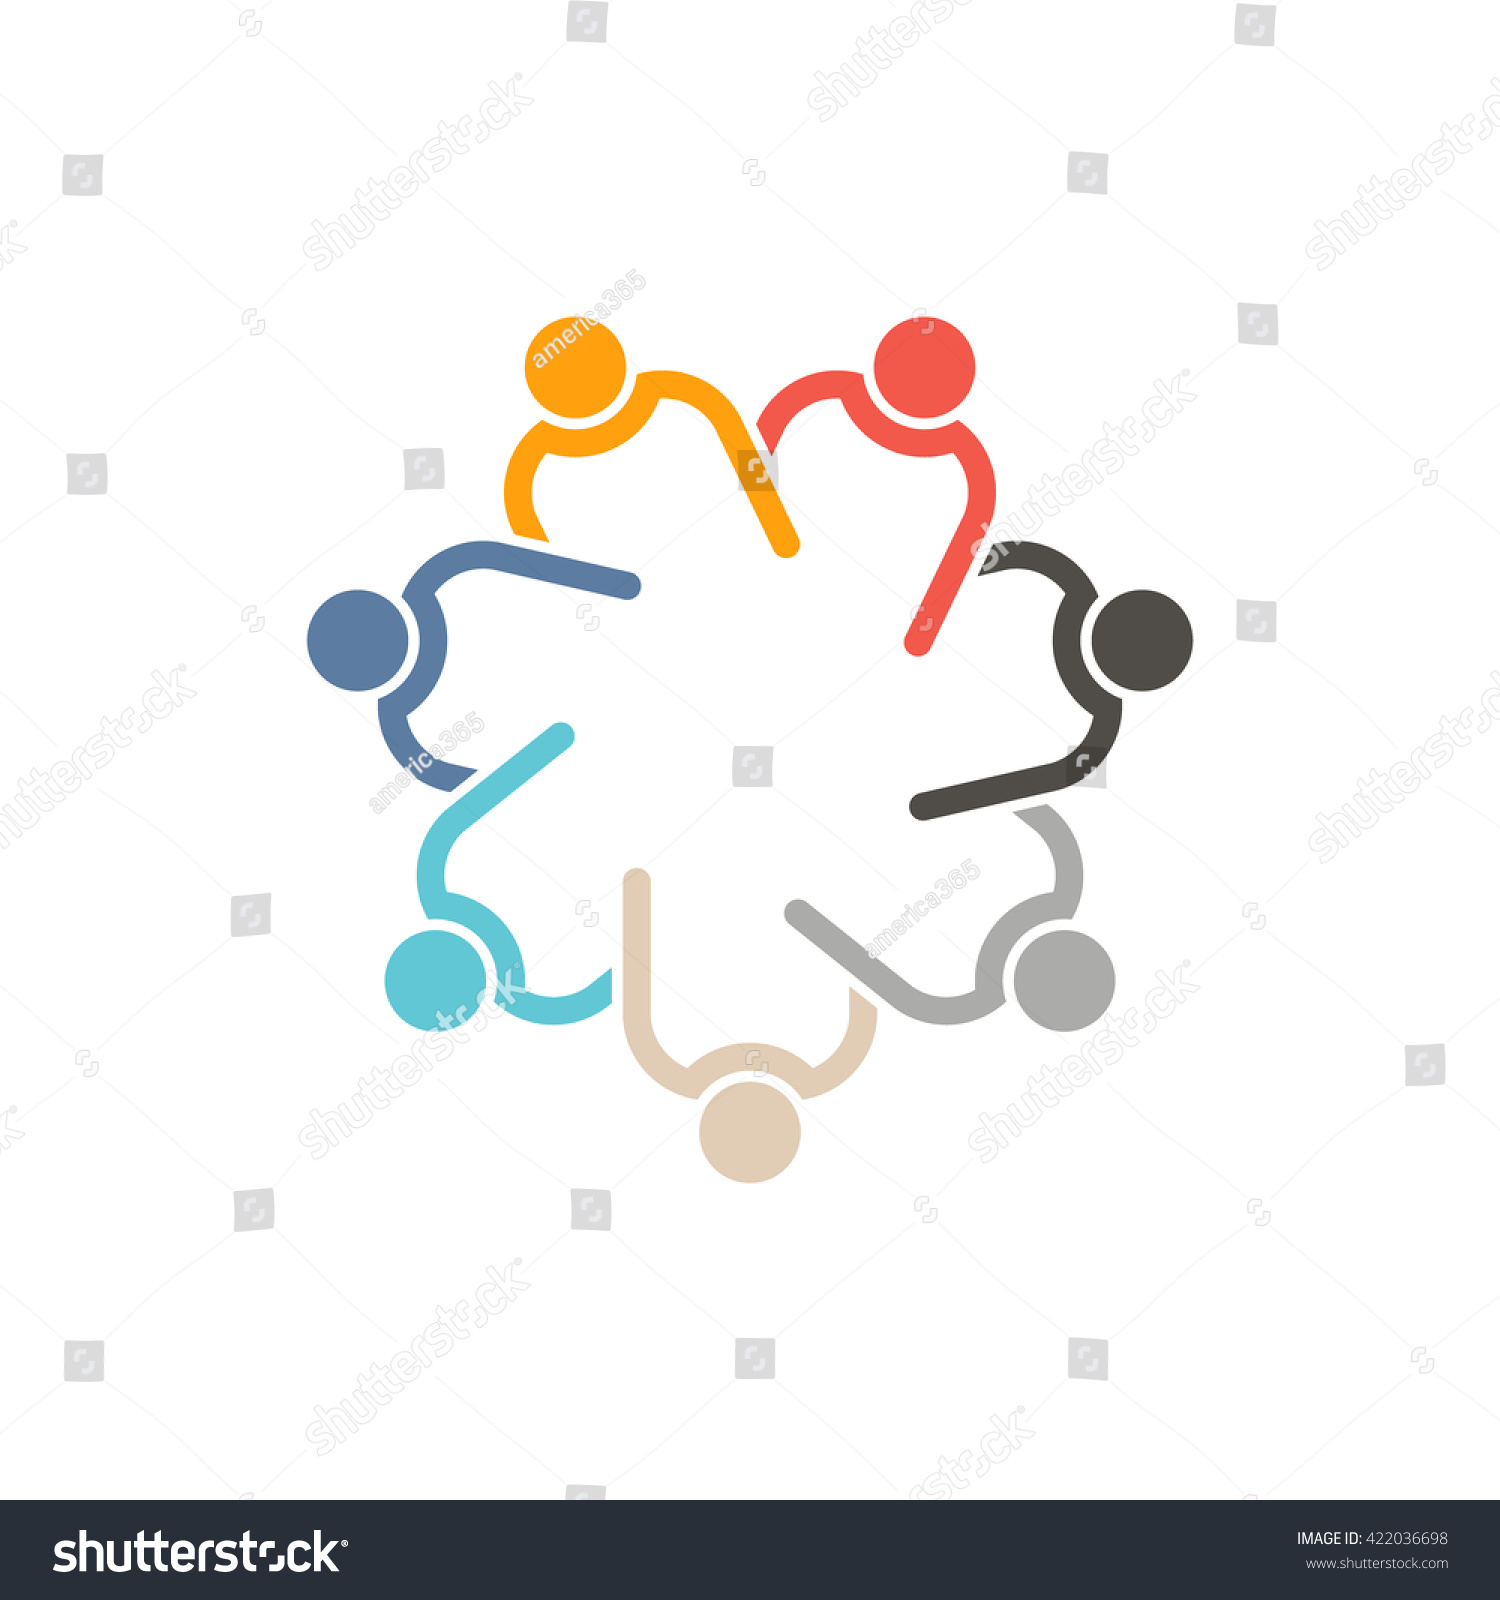 People Helping Each Other: Teamwork 7 Circle Interlacedconcept Group Connected Stock